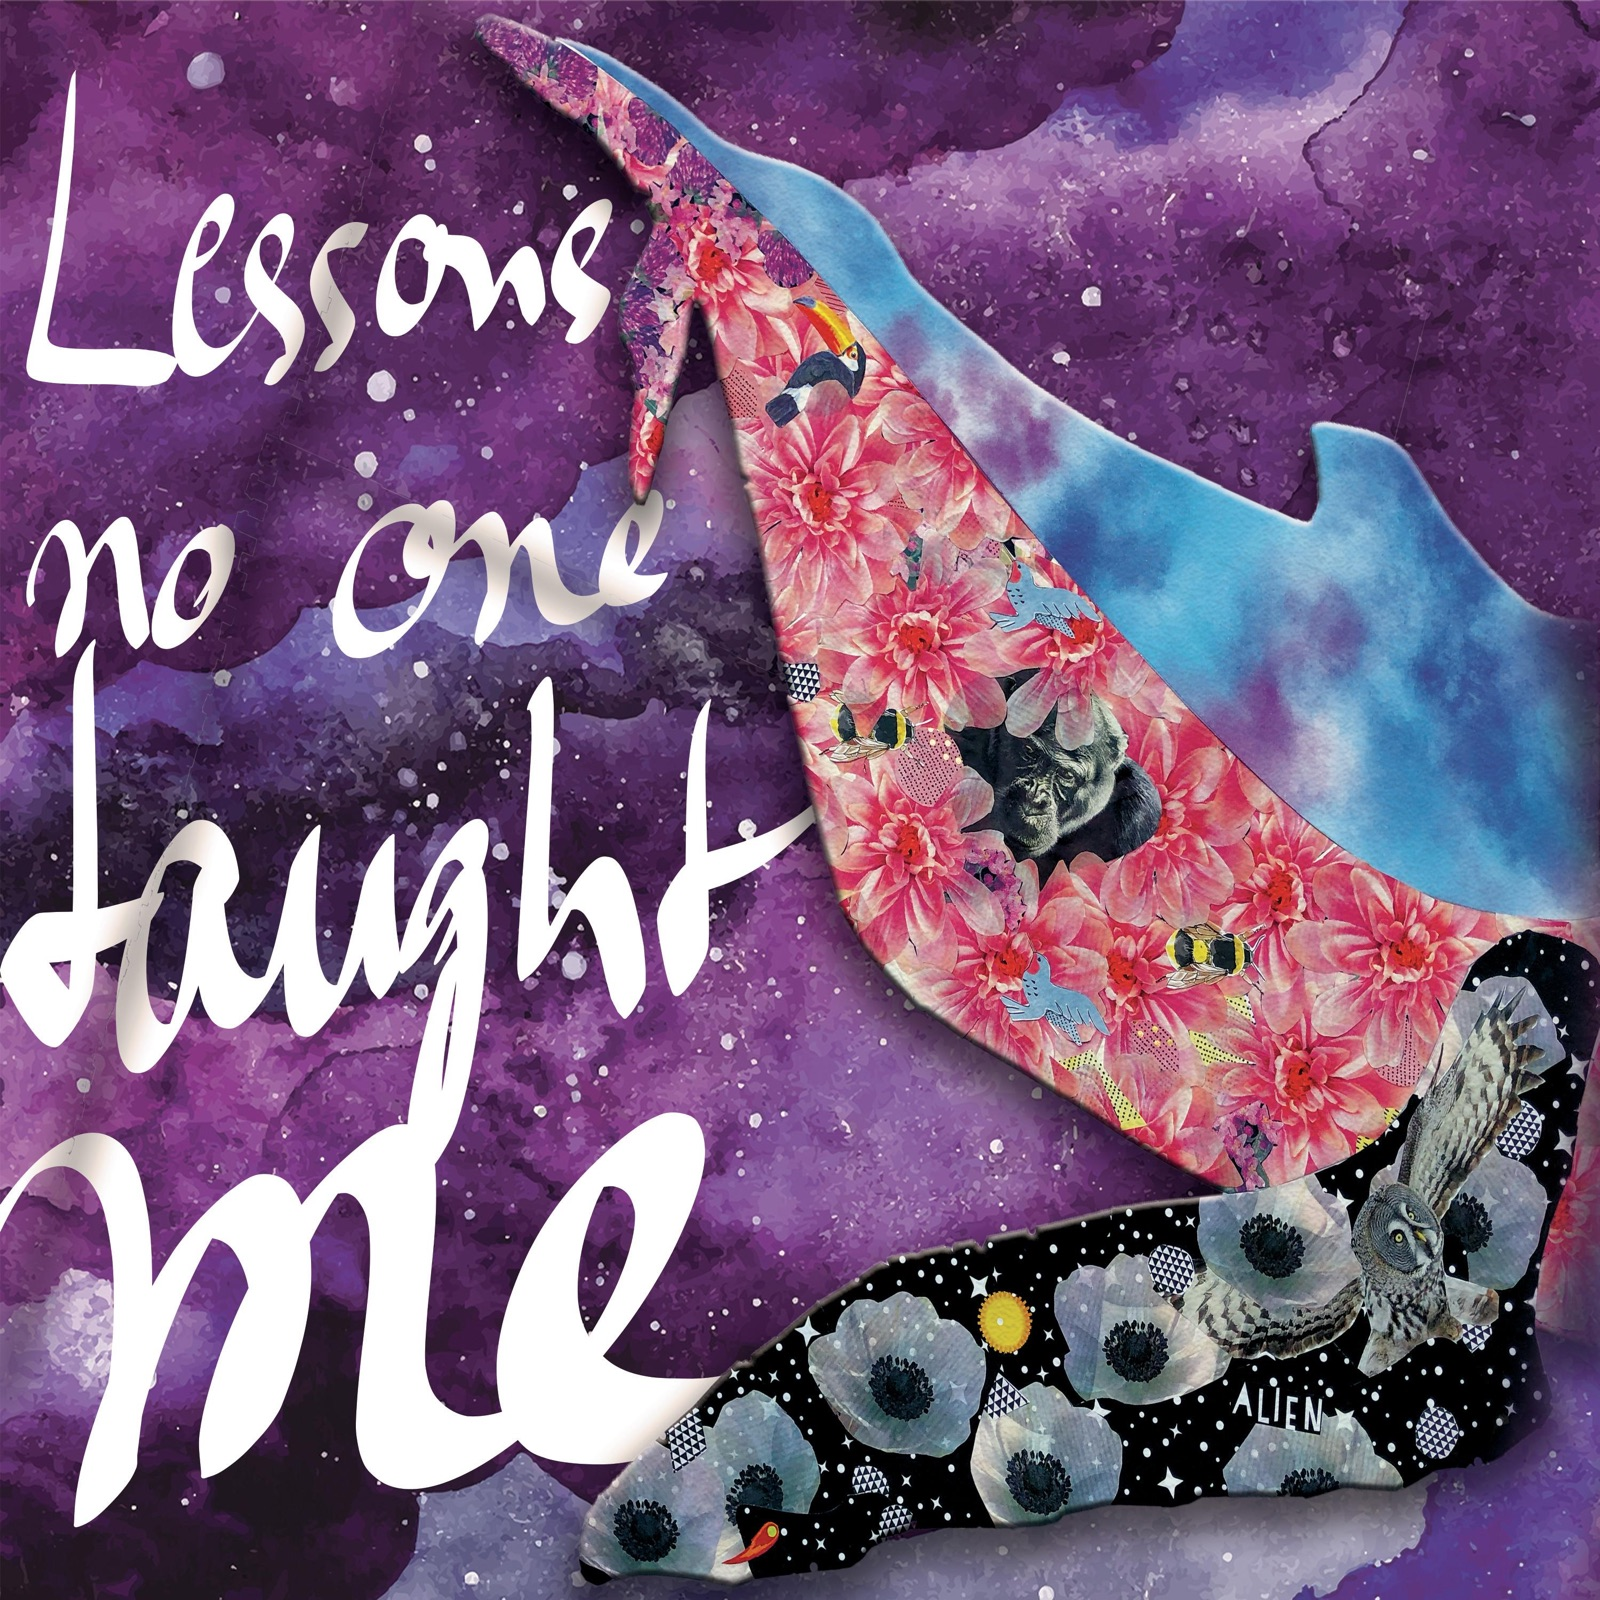 Nik Cosmo - Lessons No One Taught Me (Lessons No One Taught Me)